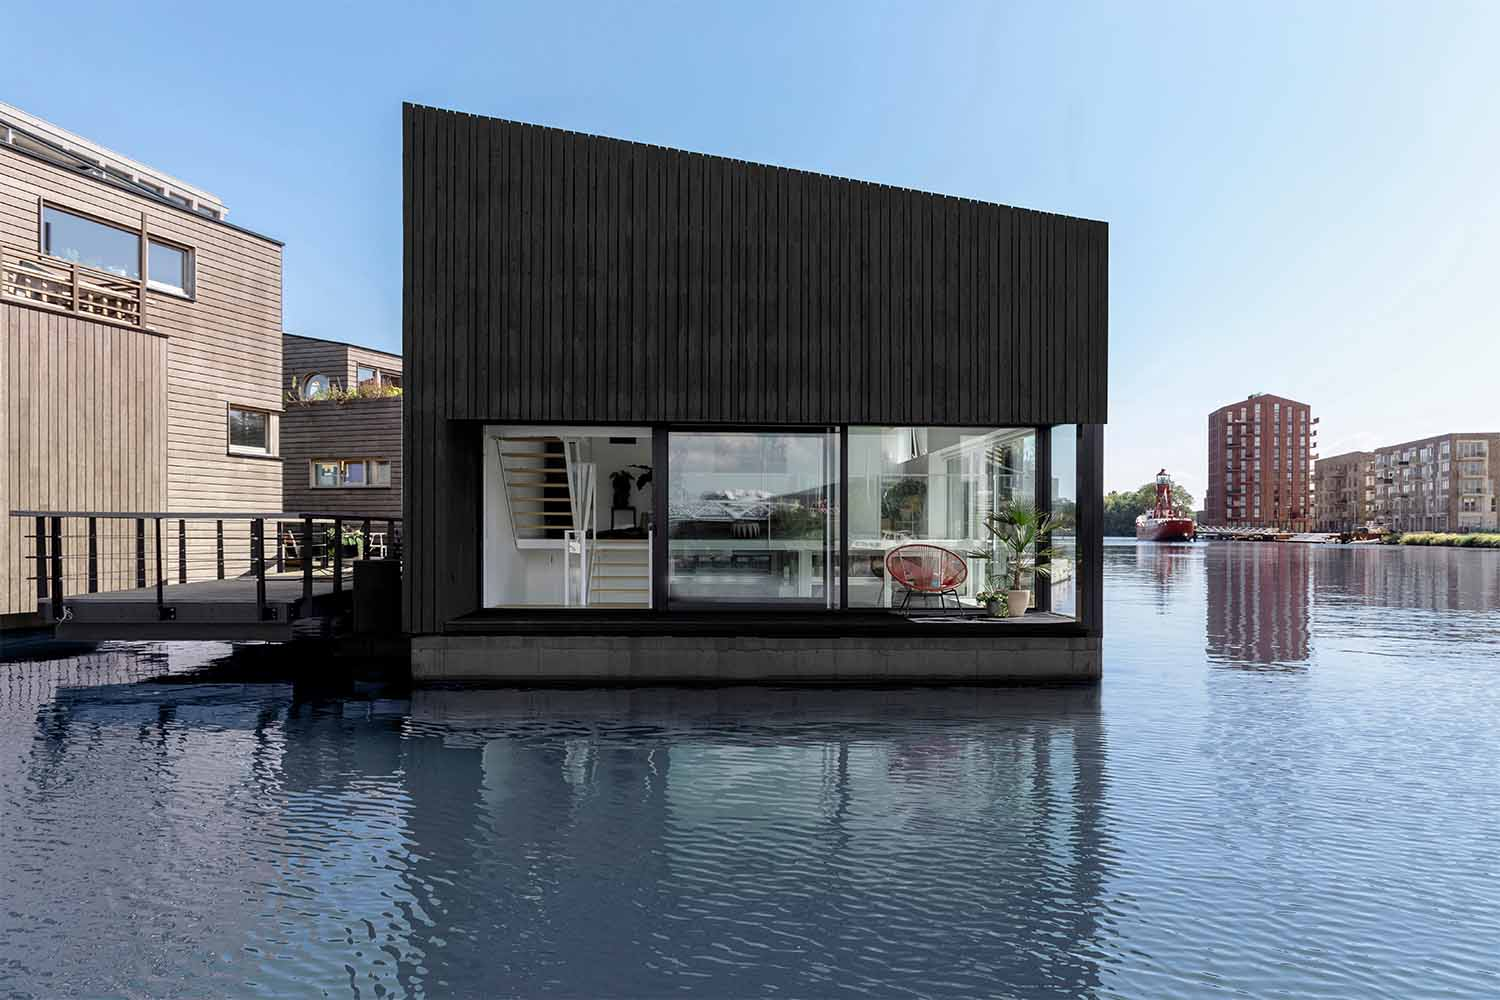 Sustainable living in a floating village